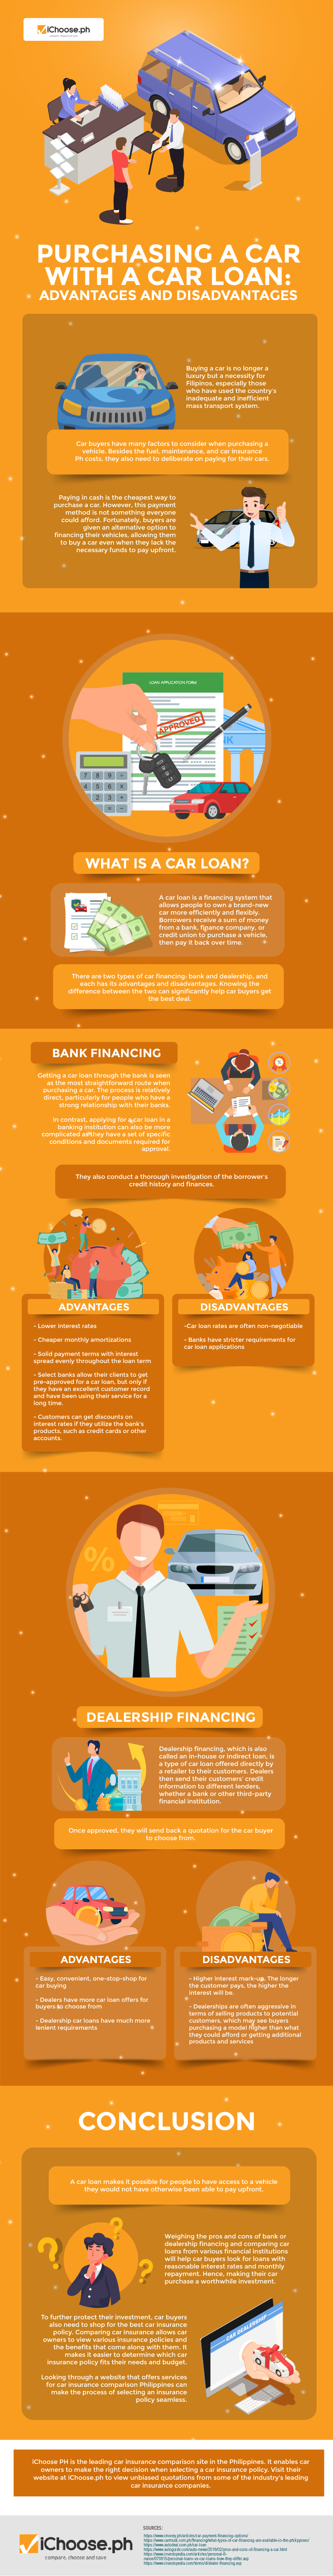 Purchasing_a_Car_with_a_Car_Loan_-_Advantages_and_Disadvantages_-_iChoose_PH_Infographic_